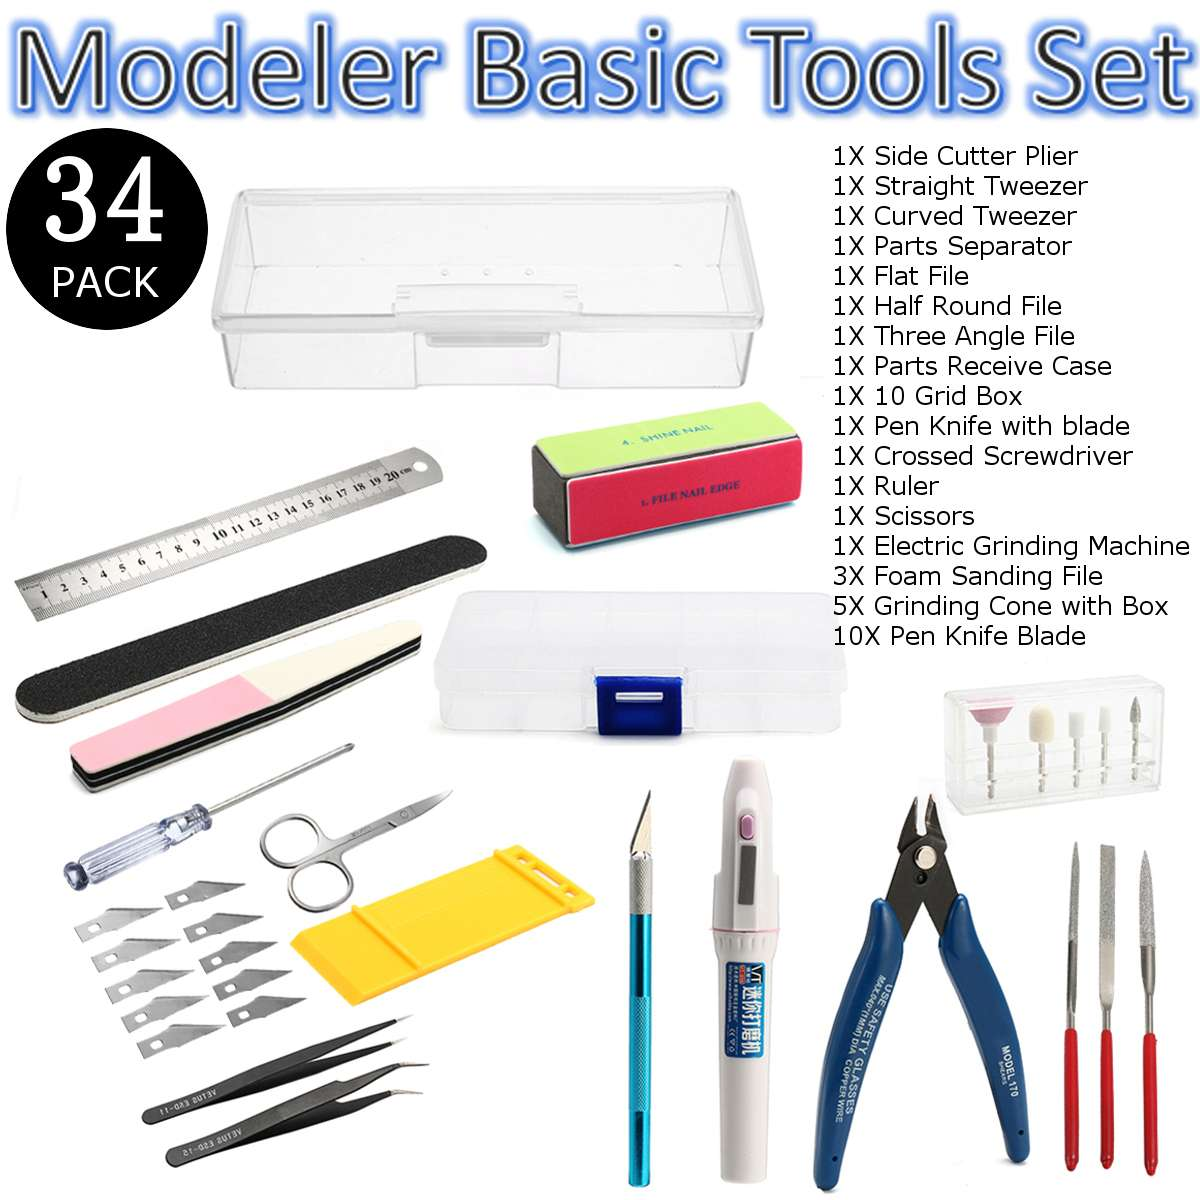 Upgrade Tools Set  Military Gundam Assembly Model Basic Tool Kits Electric Grinding Machine City Building Model Tool Kits